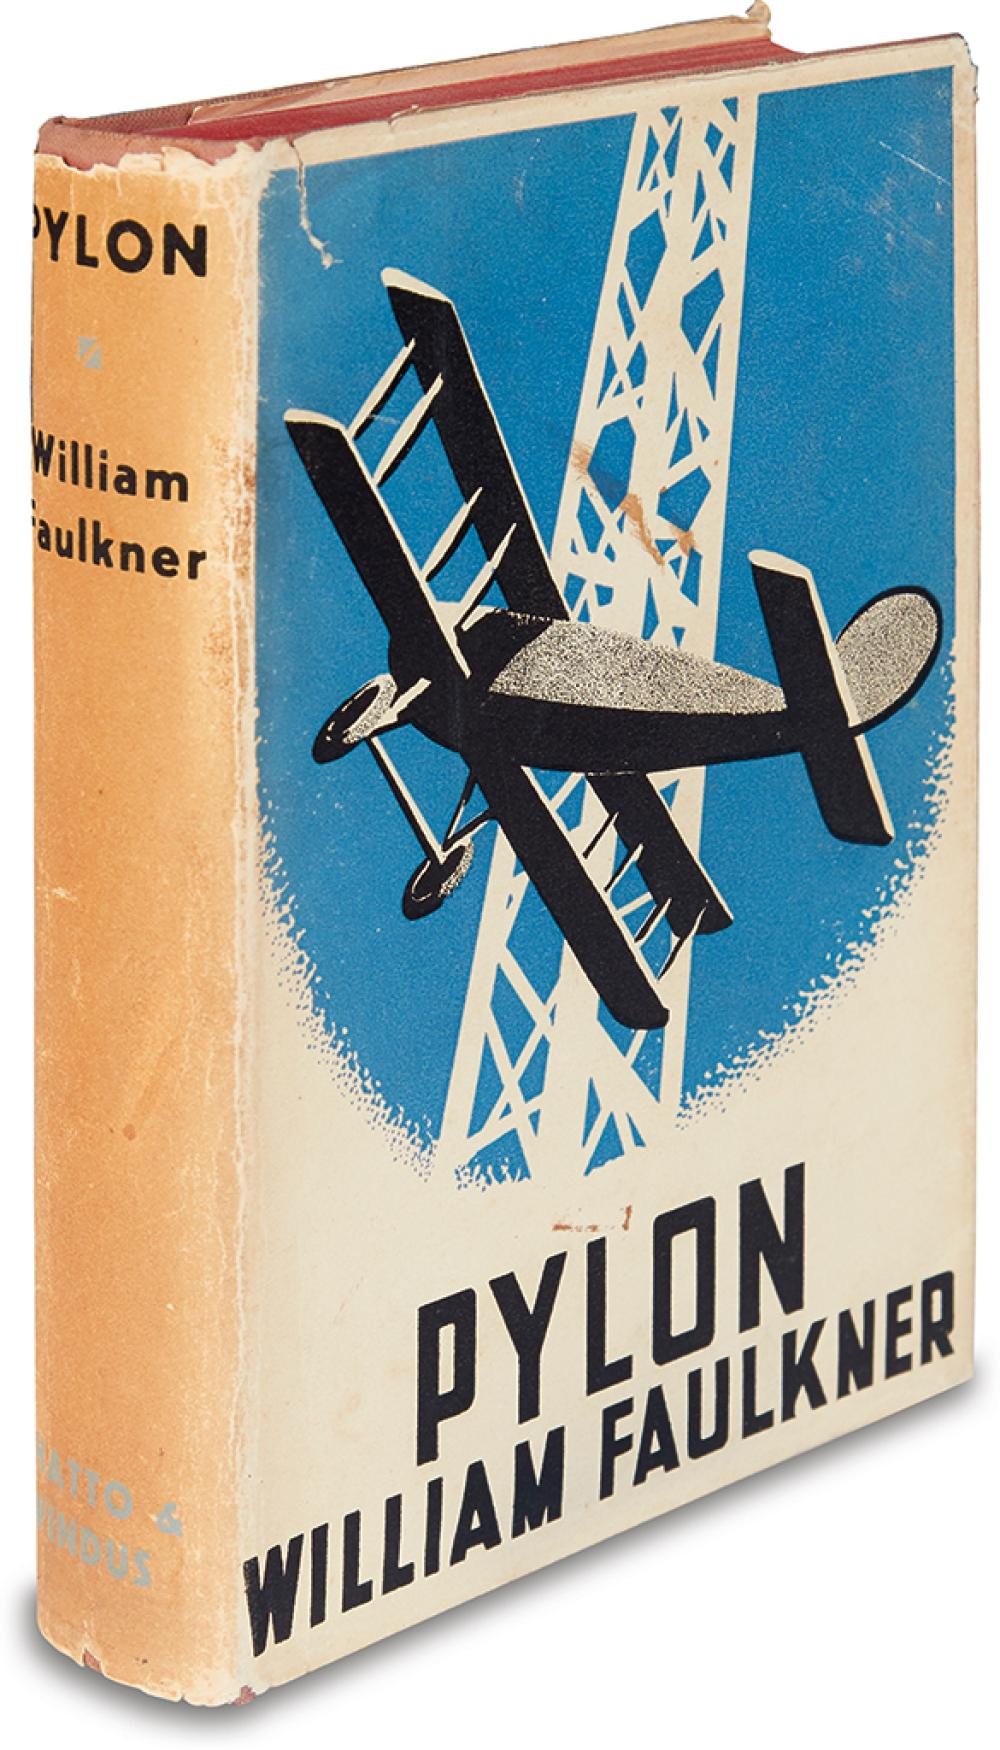 FAULKNER, WILLIAM. Pylon.